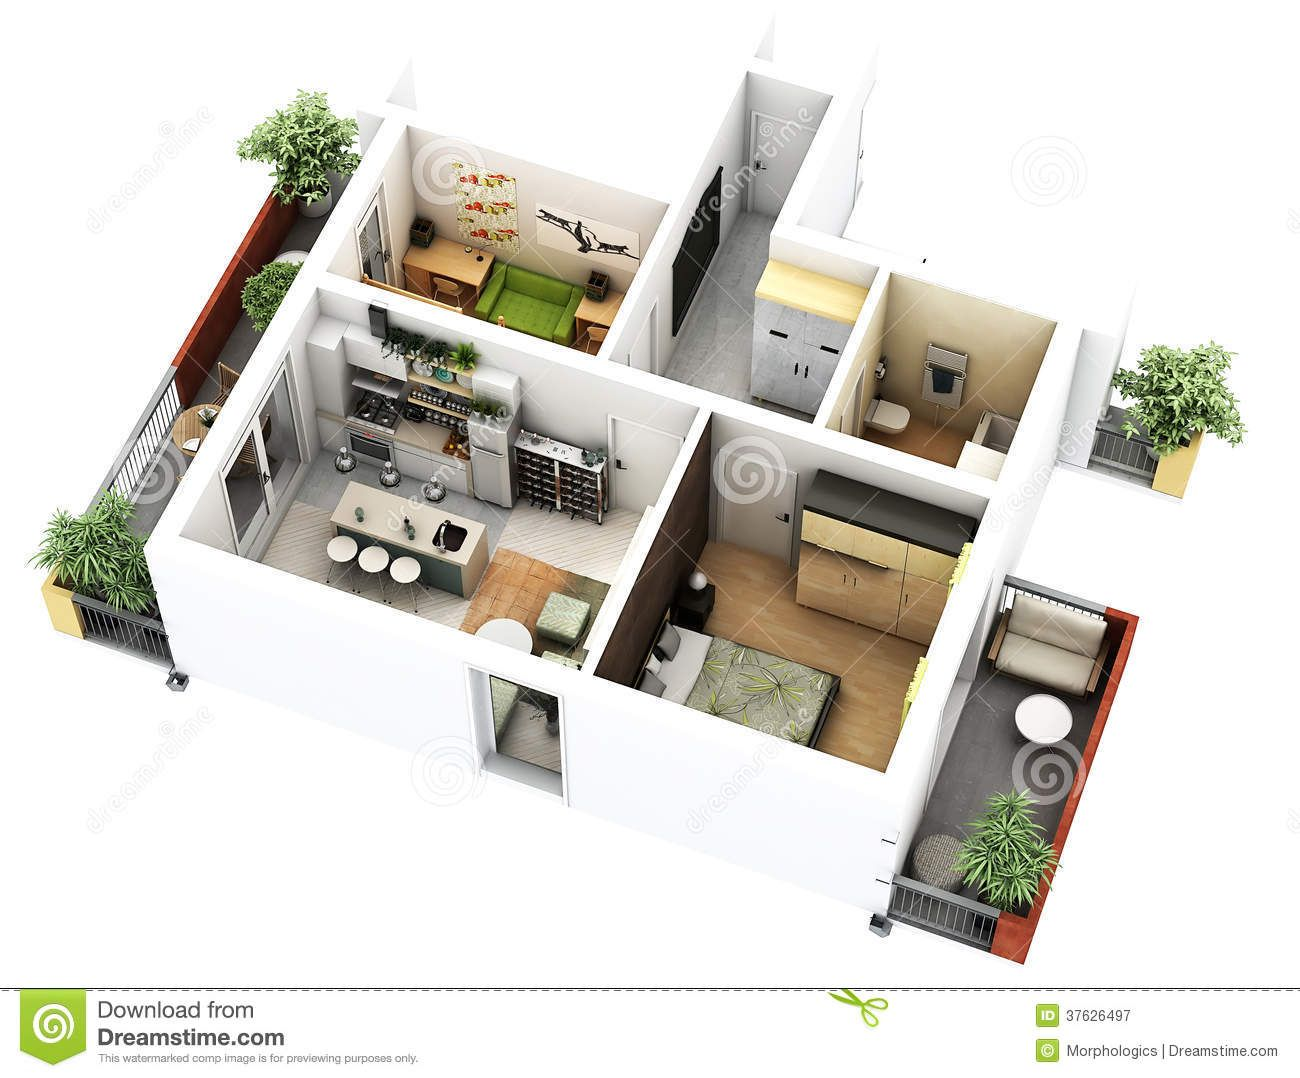 Pin by fetiana on Home / Apartement Konsep | 4 bedroom house ... Rack House Plans on wood house plans, car house plans, bottle house plans, frame house plans, tube house plans, panel house plans, computer house plans, roof house plans, puppet house plans, roll house plans, floor house plans, worm house plans, head house plans, electric house plans, box house plans, kitchen house plans, door house plans, light house plans, storage house plans, building house plans,